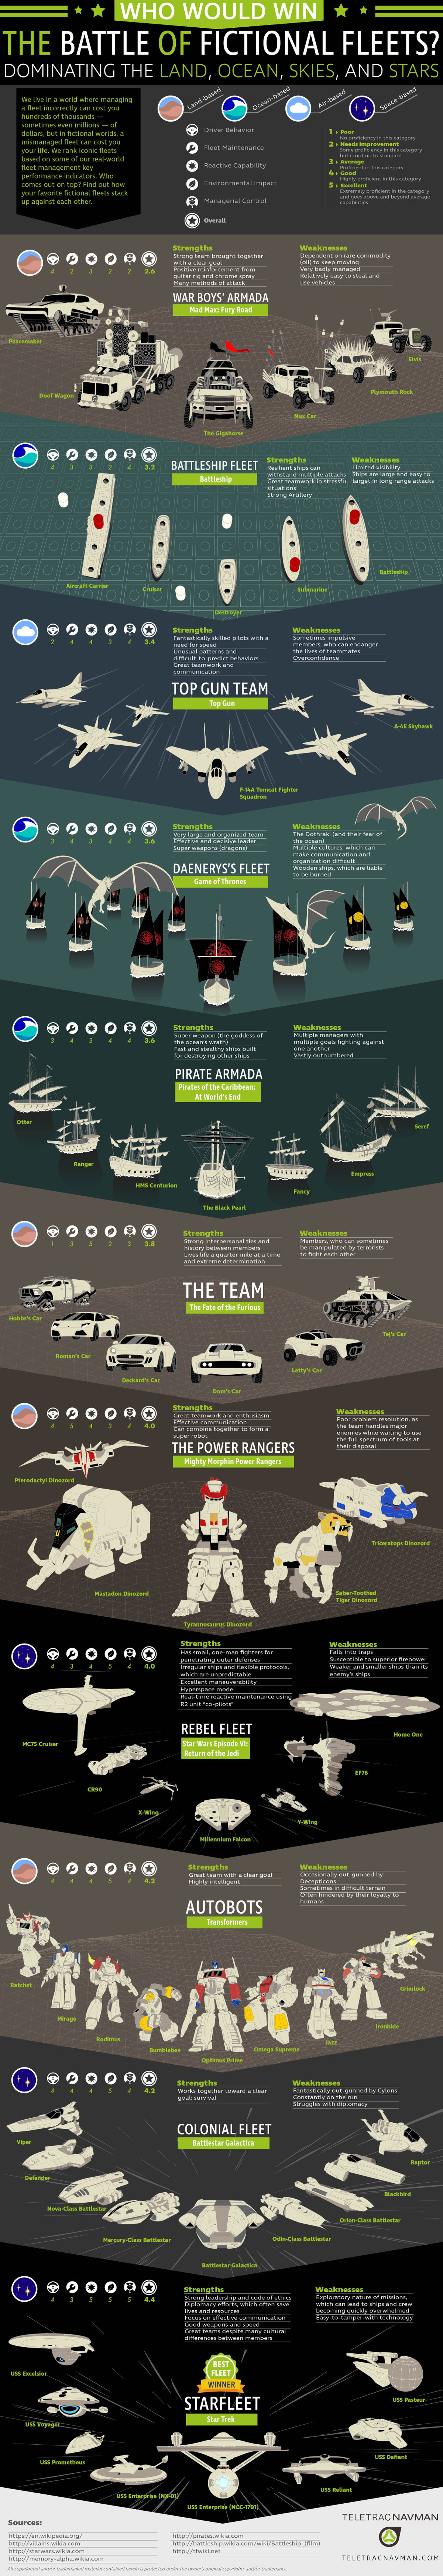 star-trek-starfleet-awarded-best-fictional-fleet